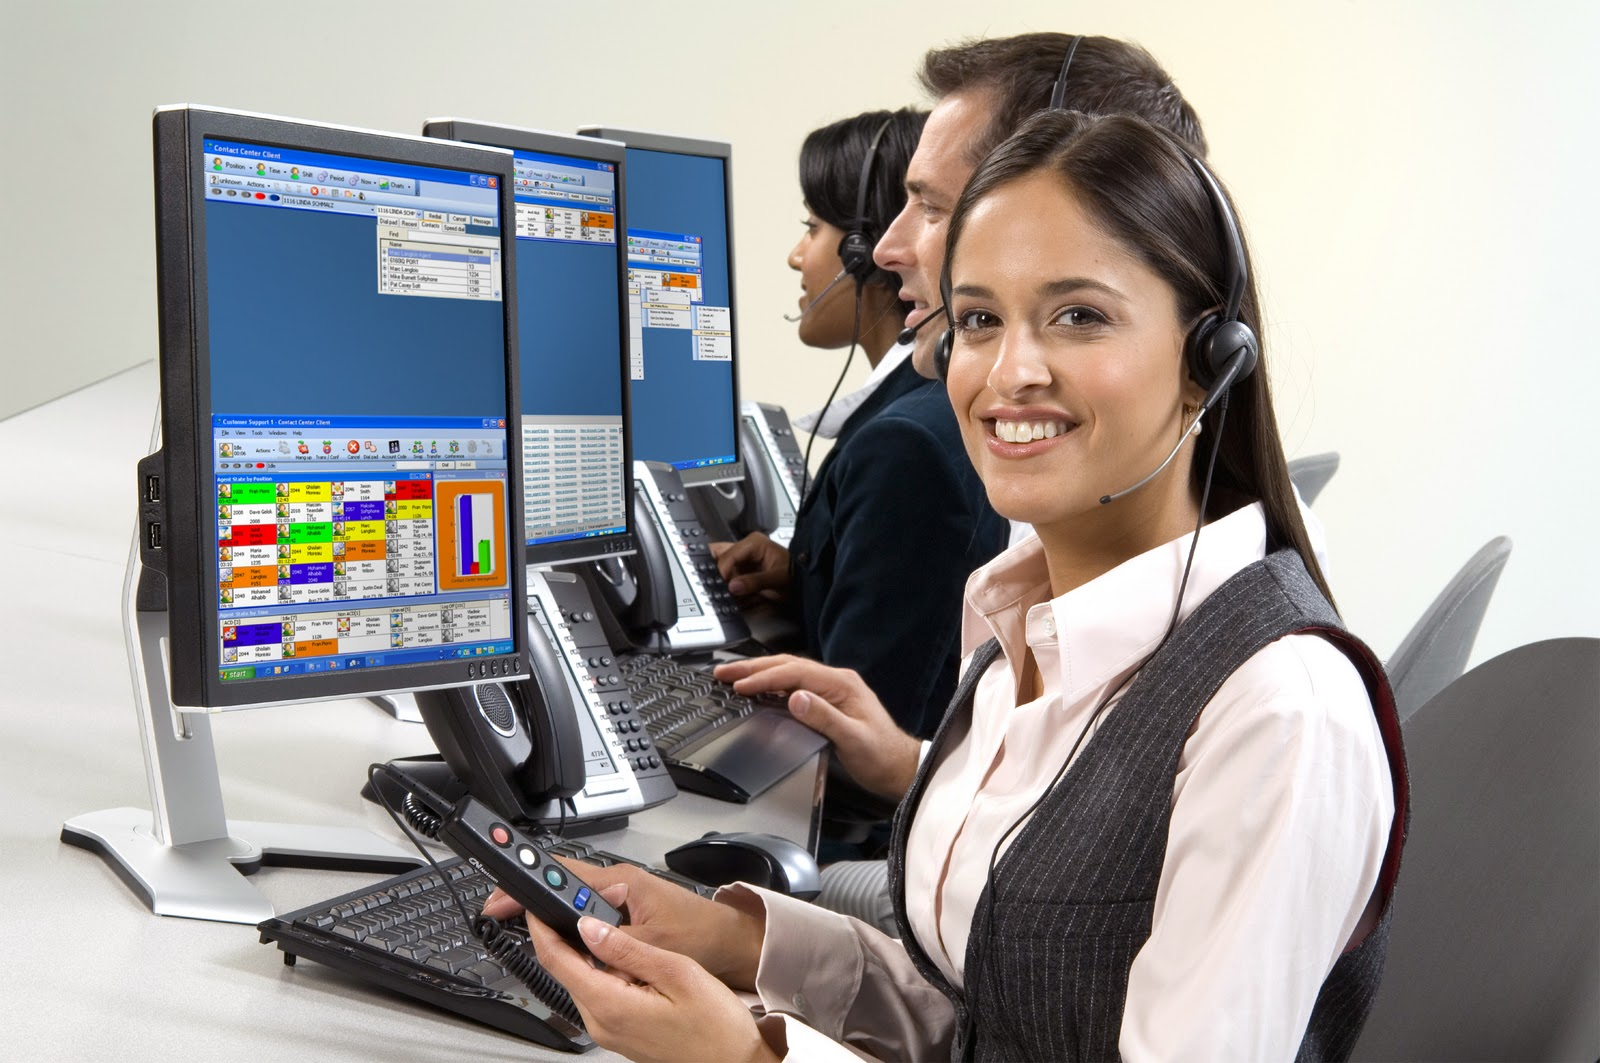 The Breakdown of Why We Need Call Centers